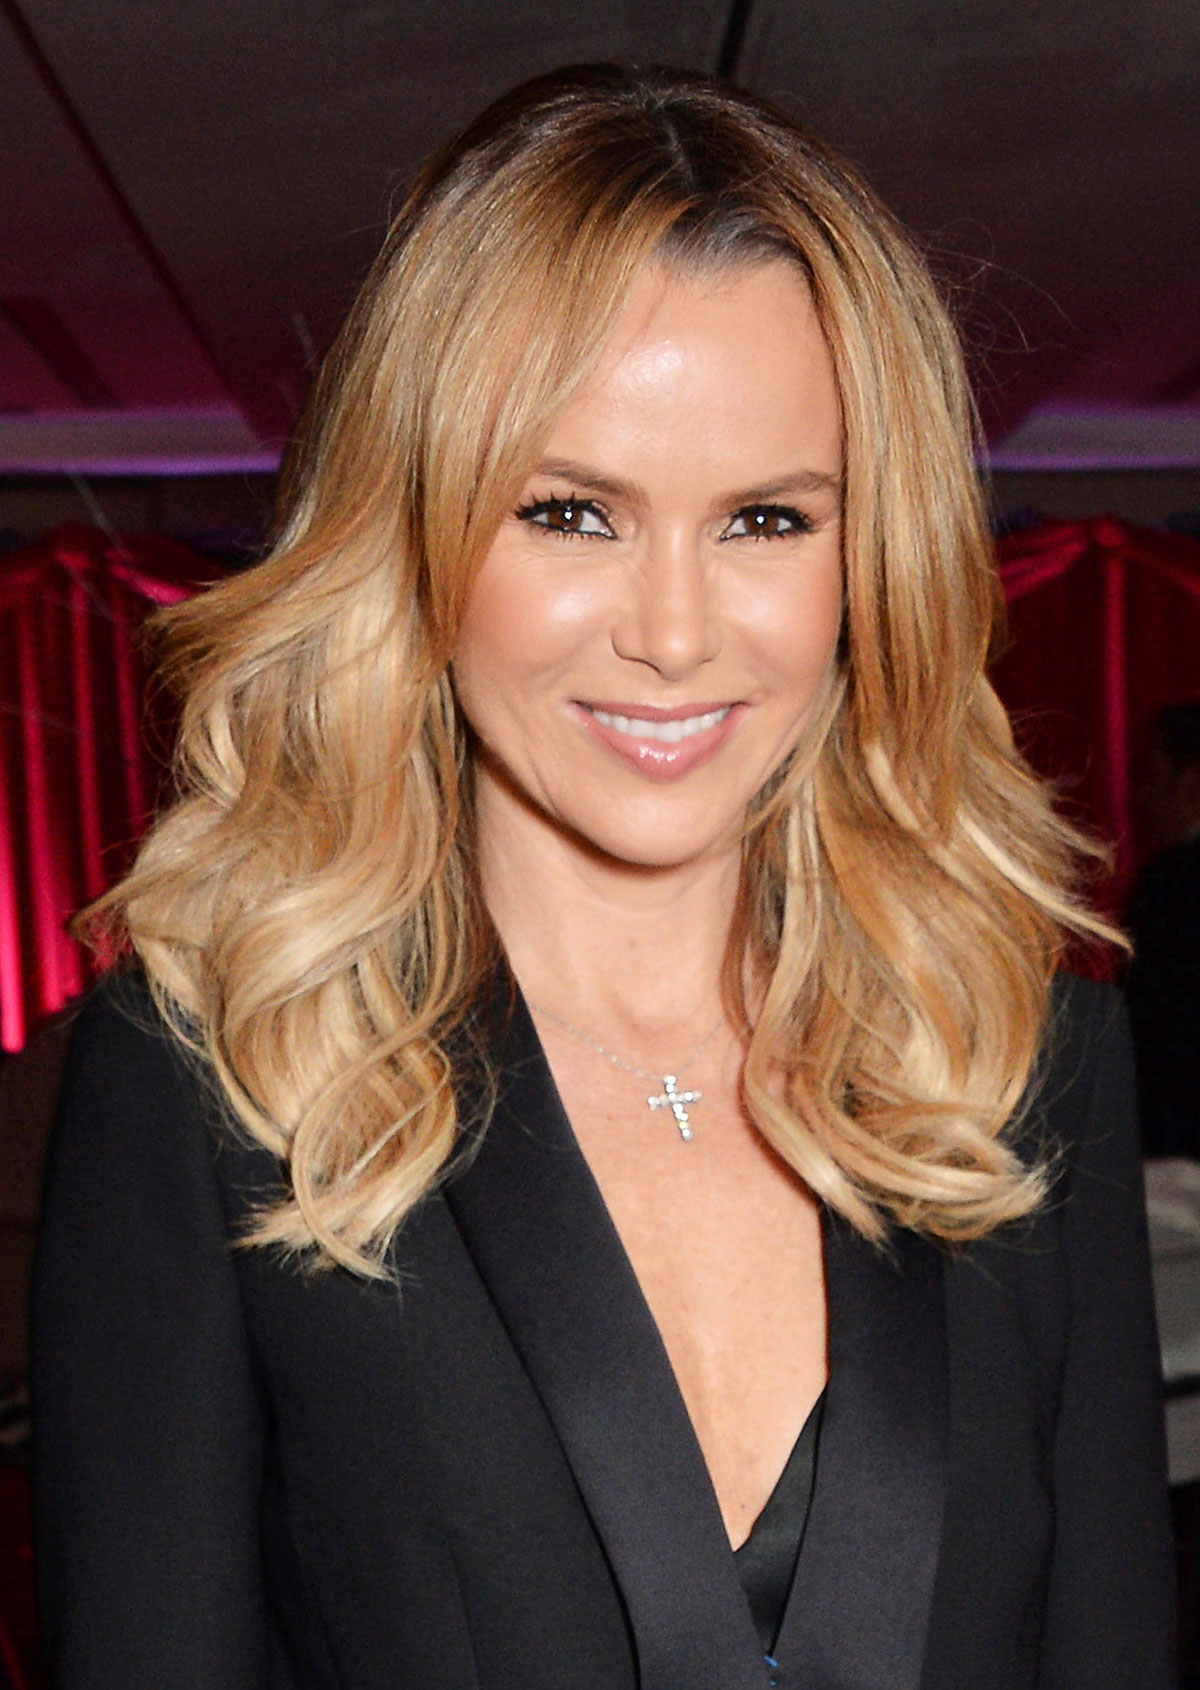 AMANDA HOLDEN at Odd Ball at London's Royal Garden Hotel